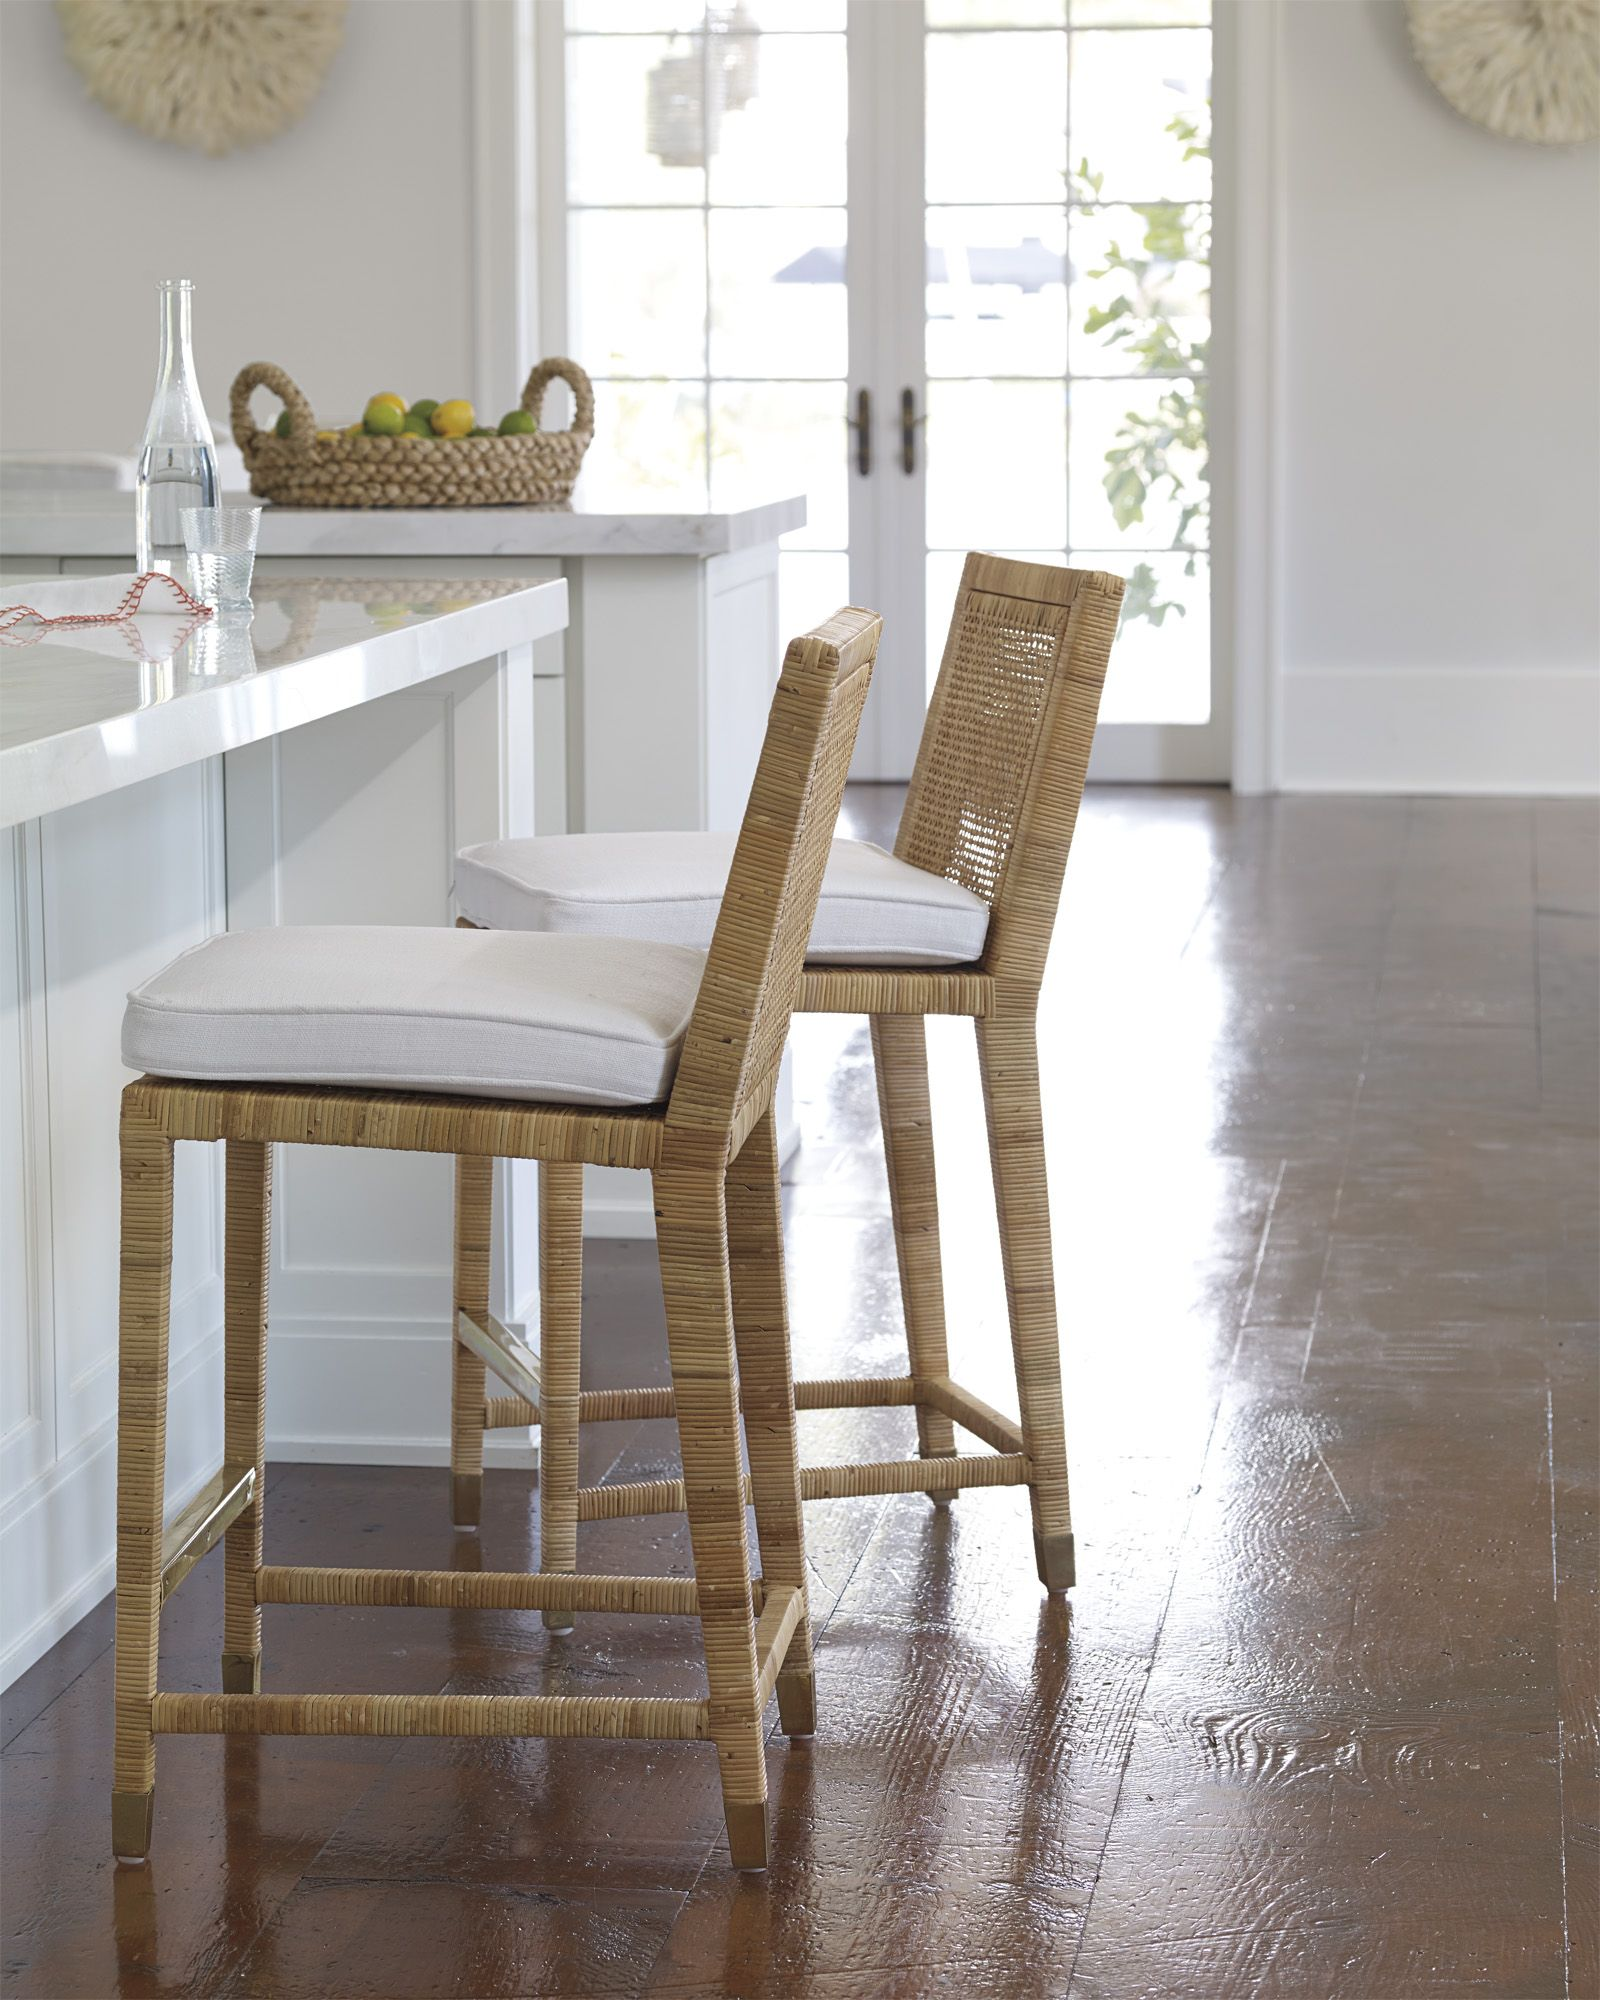 Wooden Kitchen Counter Stools Balboa Counter Stool Coastal Accents Rattan Counter Stools